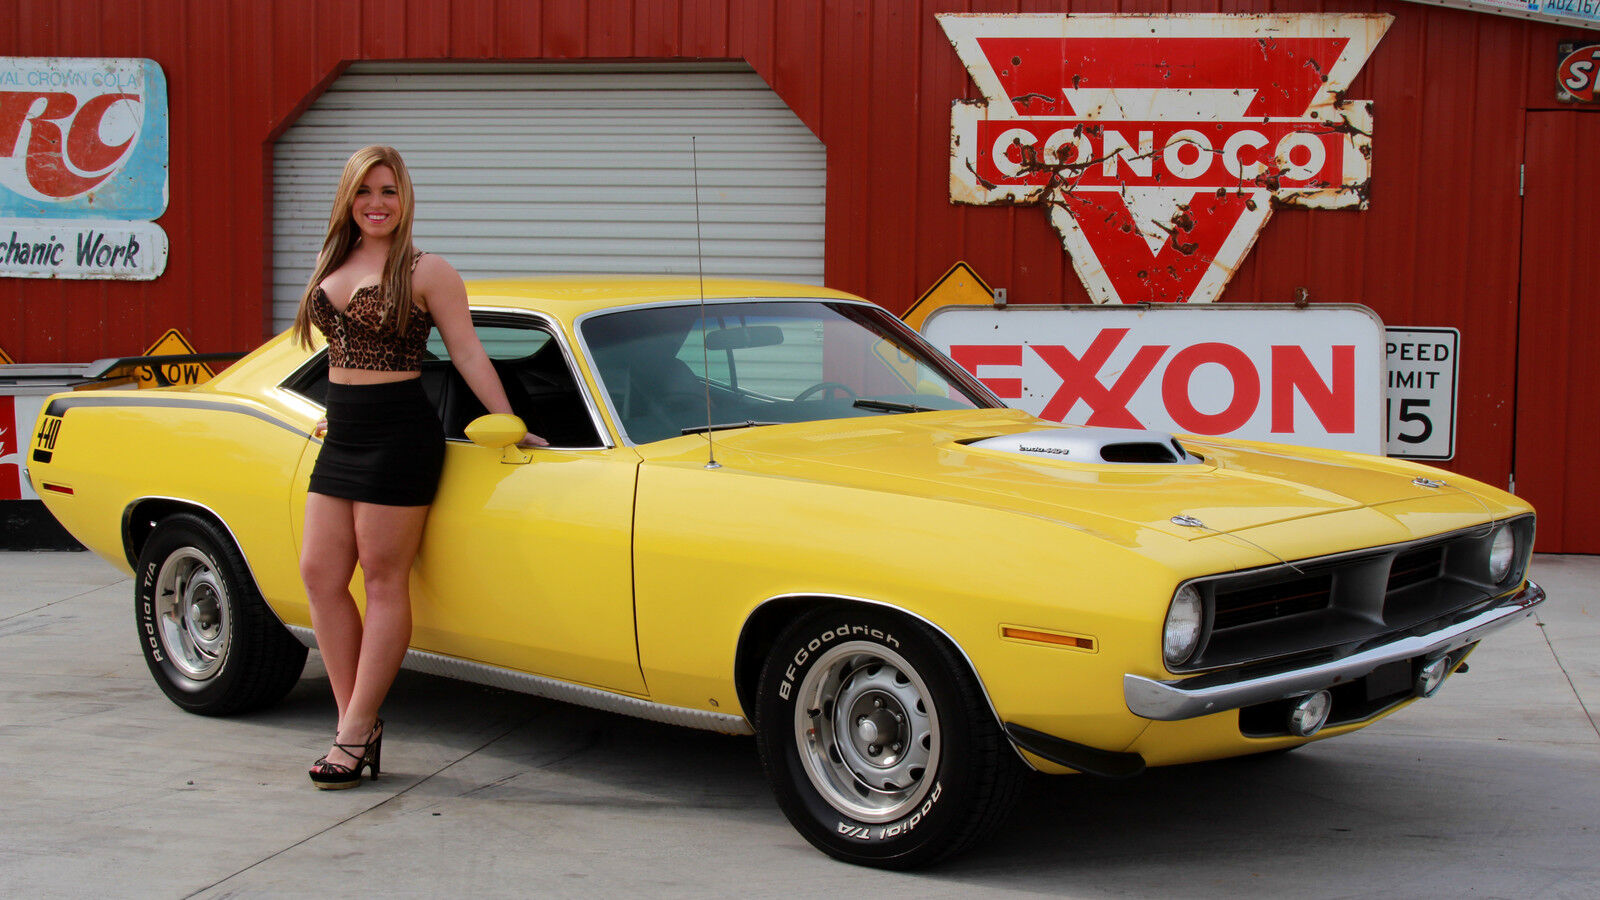 **NWS** Post Pics Of Hot Girls And Challengers!! - Page 137 - Dodge Challenger Forum: Challenger ...